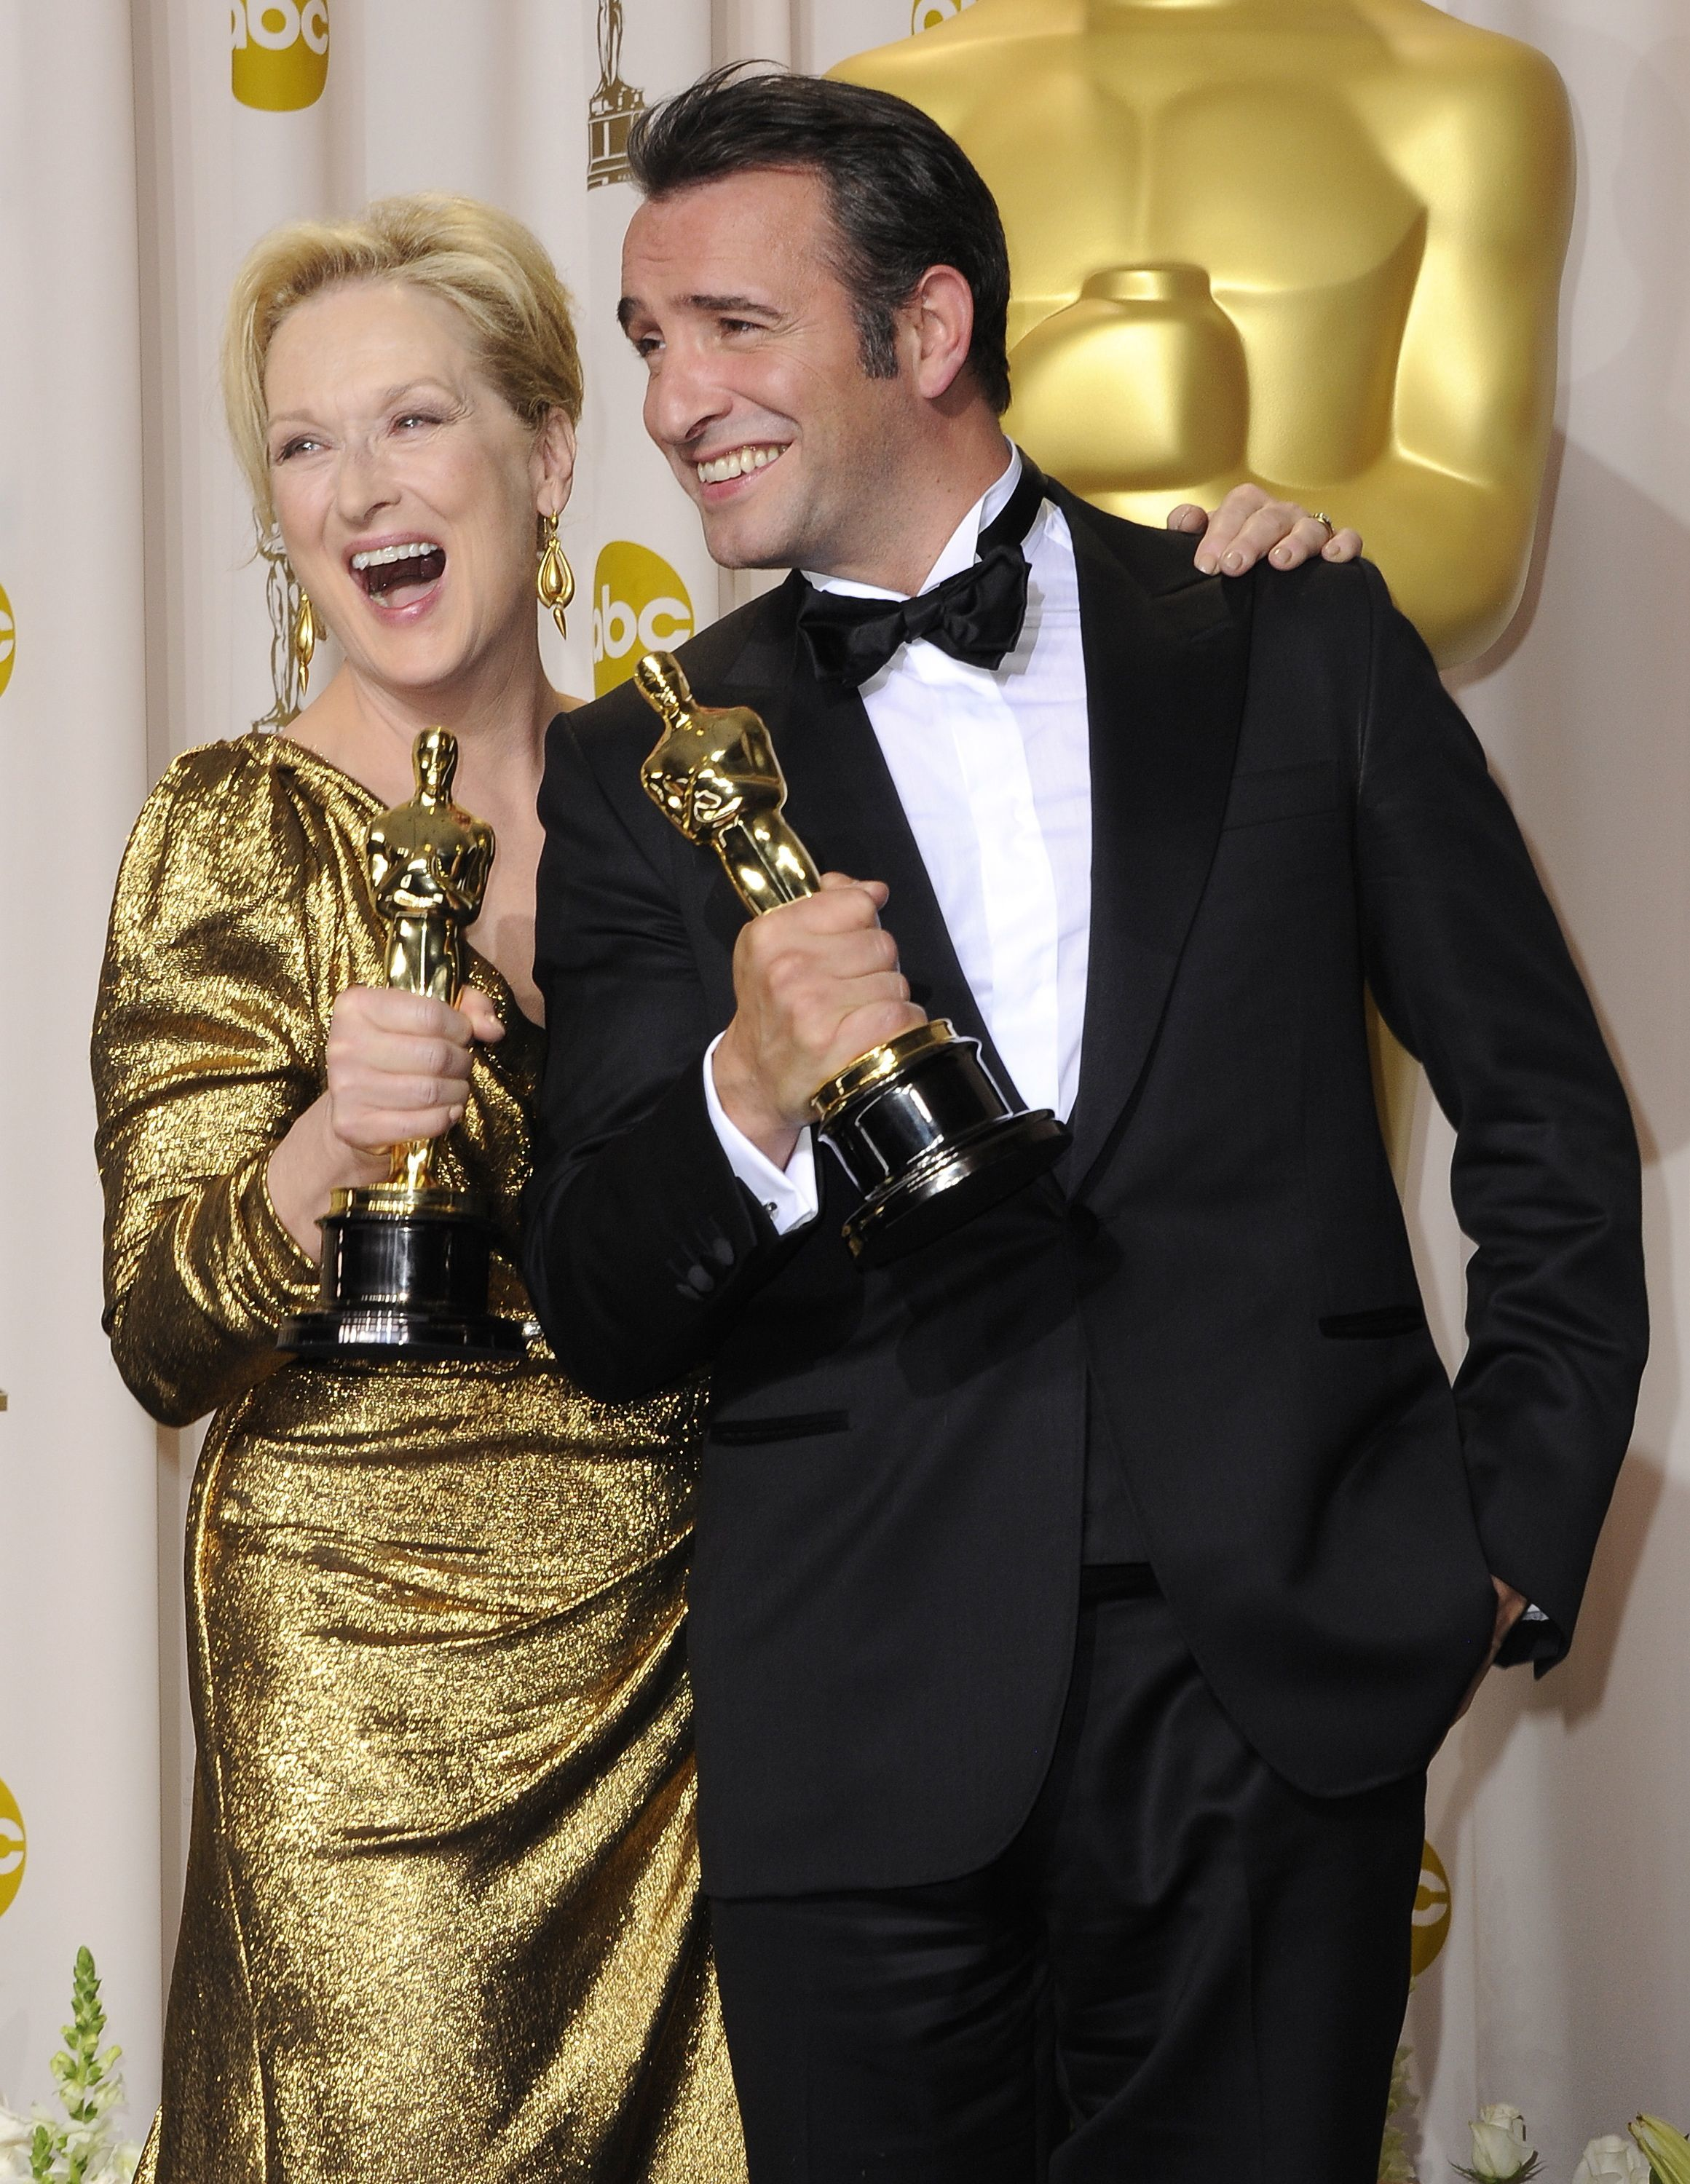 Meryl Streep and Jean Dujardin attend the 84th Annual Academy Awards at the Hollywood and Highland Center in Hollywood in 2012.